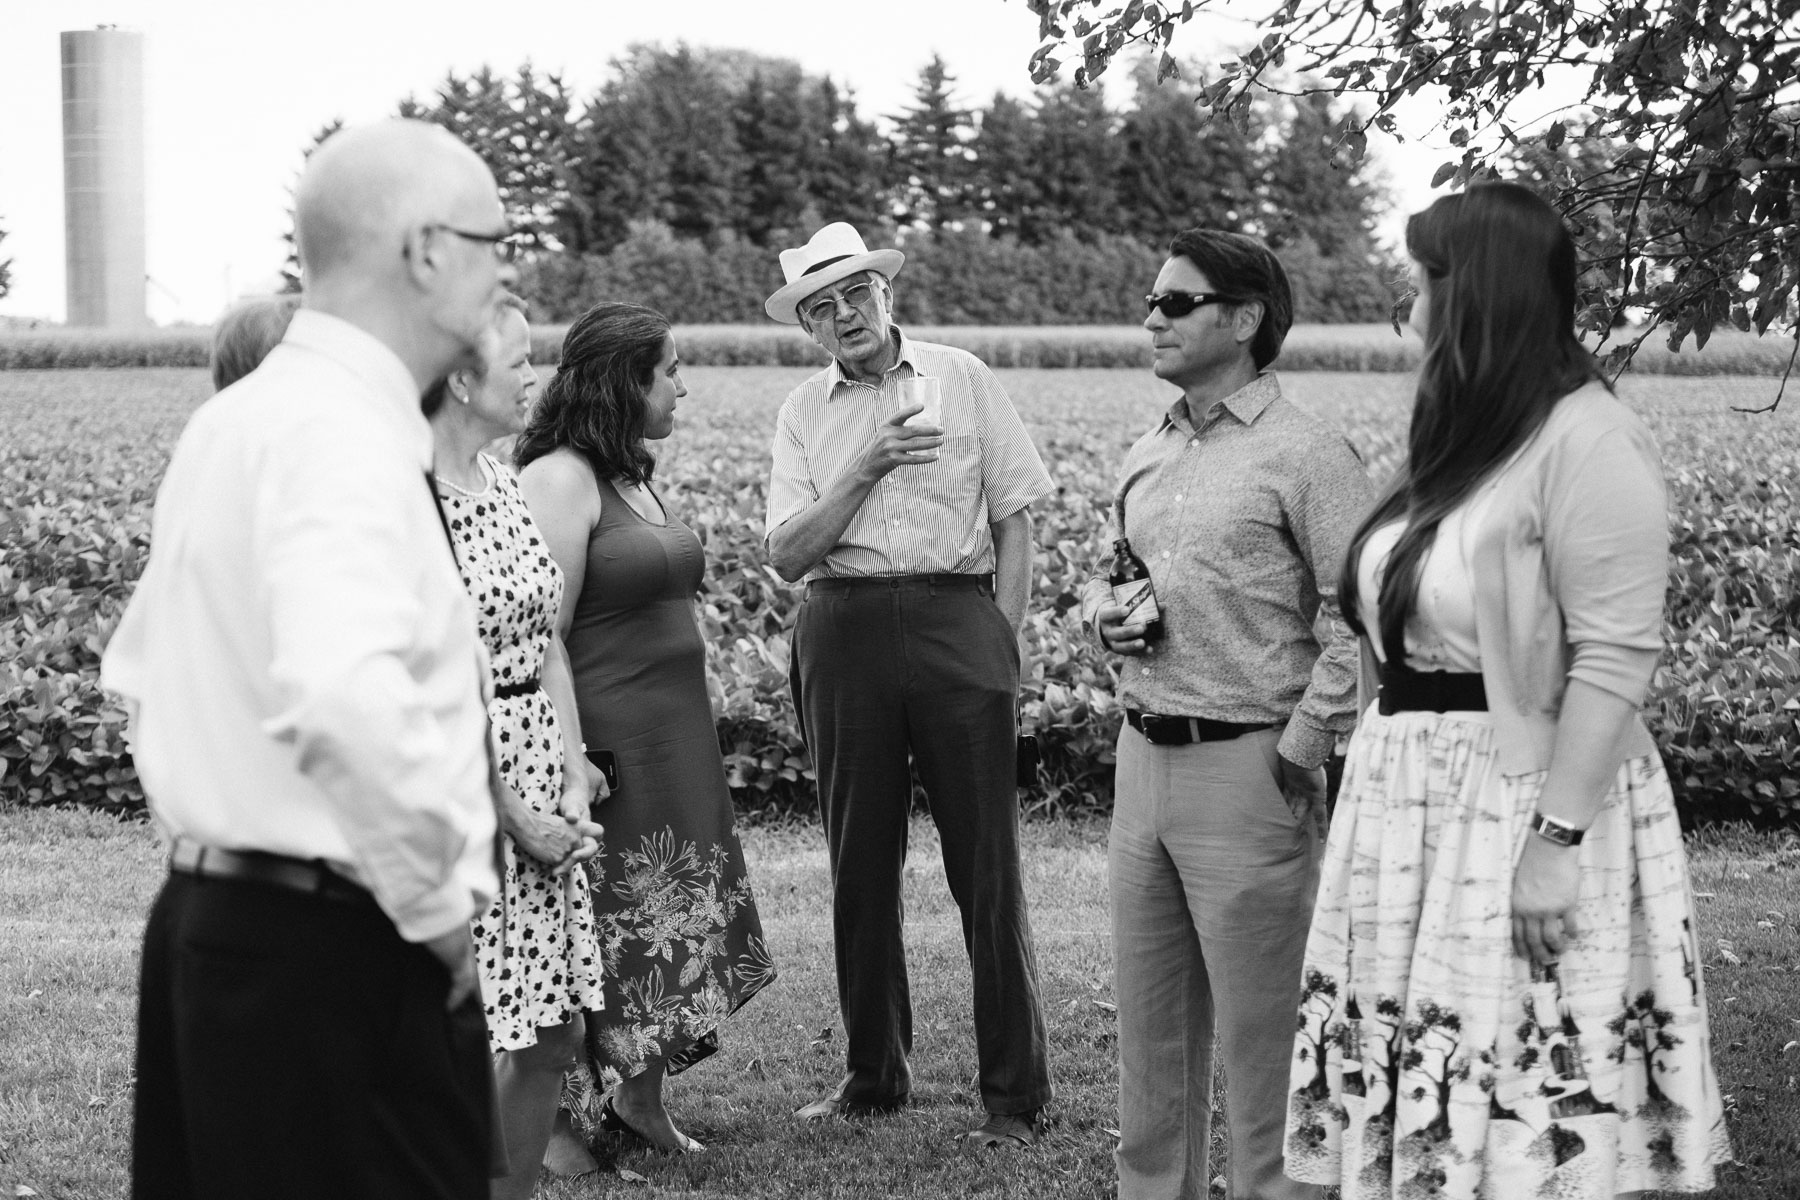 The groom's father wearing a white hat talking to several guests at a rural family farm wedding.